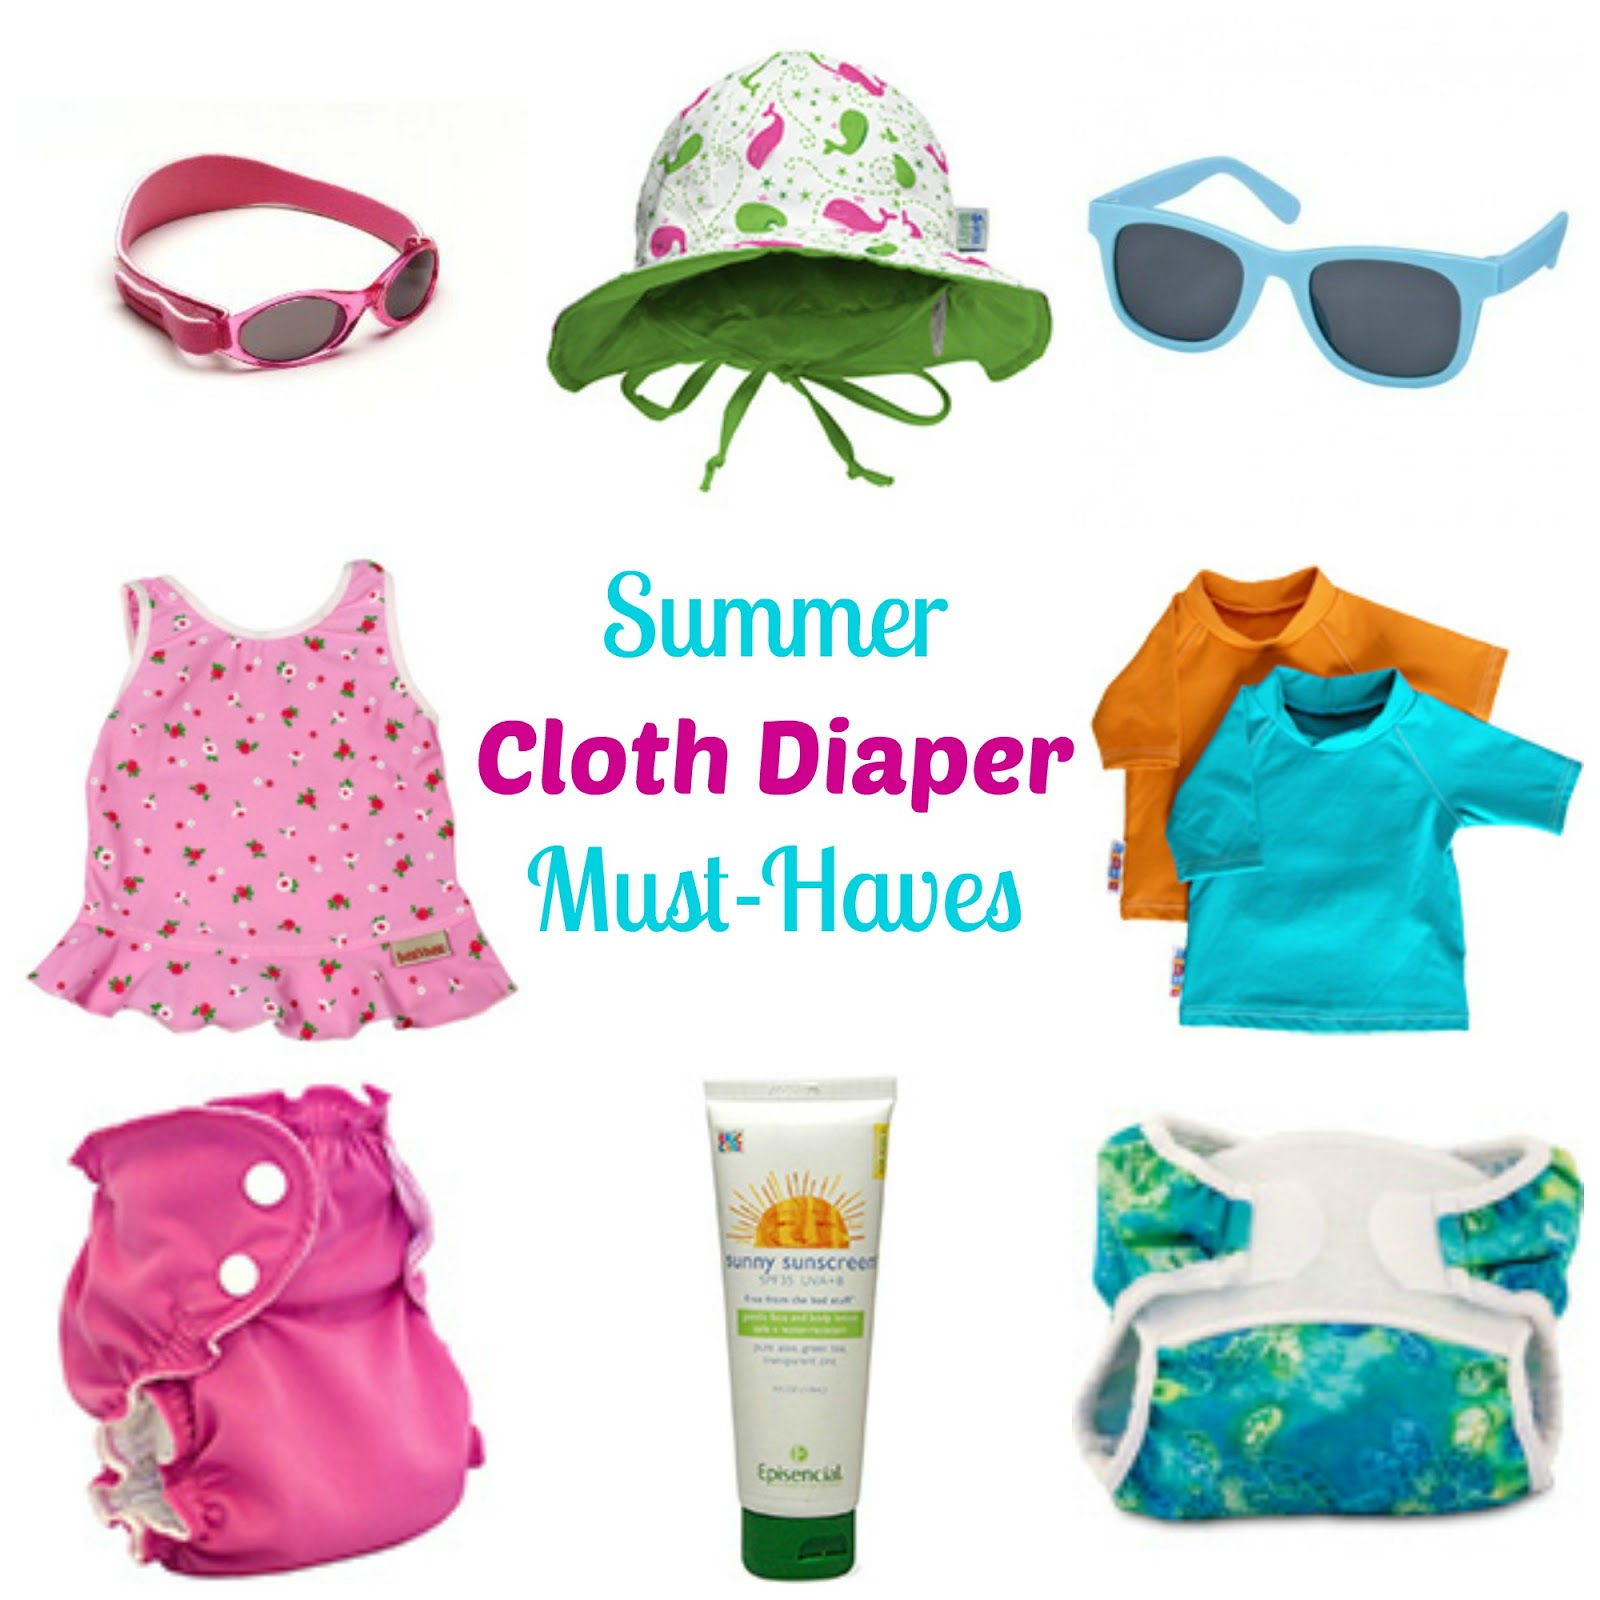 the little hedgehog fun in the sun summer cloth diaper must haves kelly 39 s closet giveaway. Black Bedroom Furniture Sets. Home Design Ideas